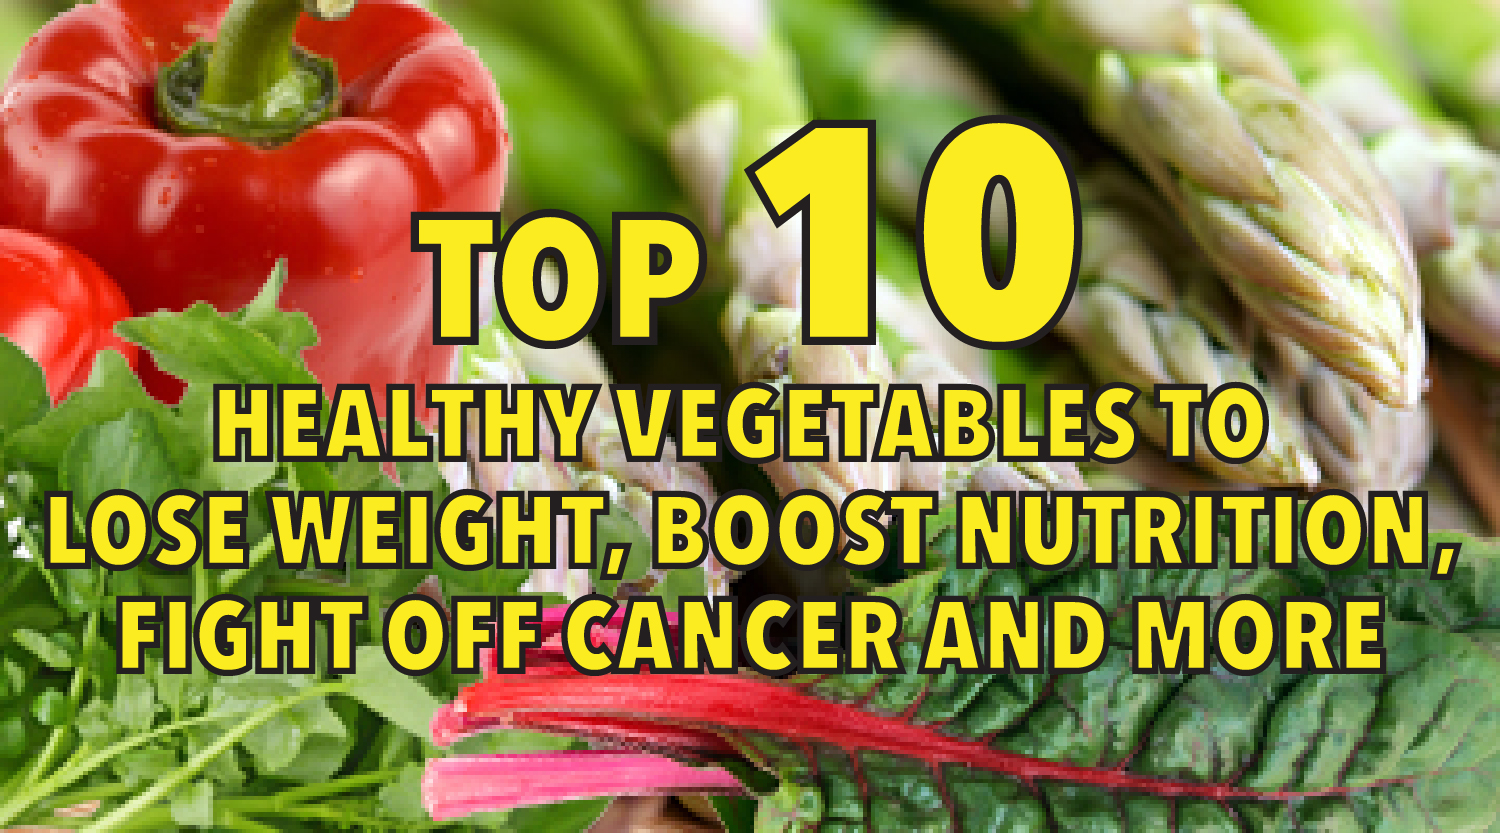 Top 10 Healthy Vegetables to Lose Weight, Boost Nutrition, Fight off Cancer and More